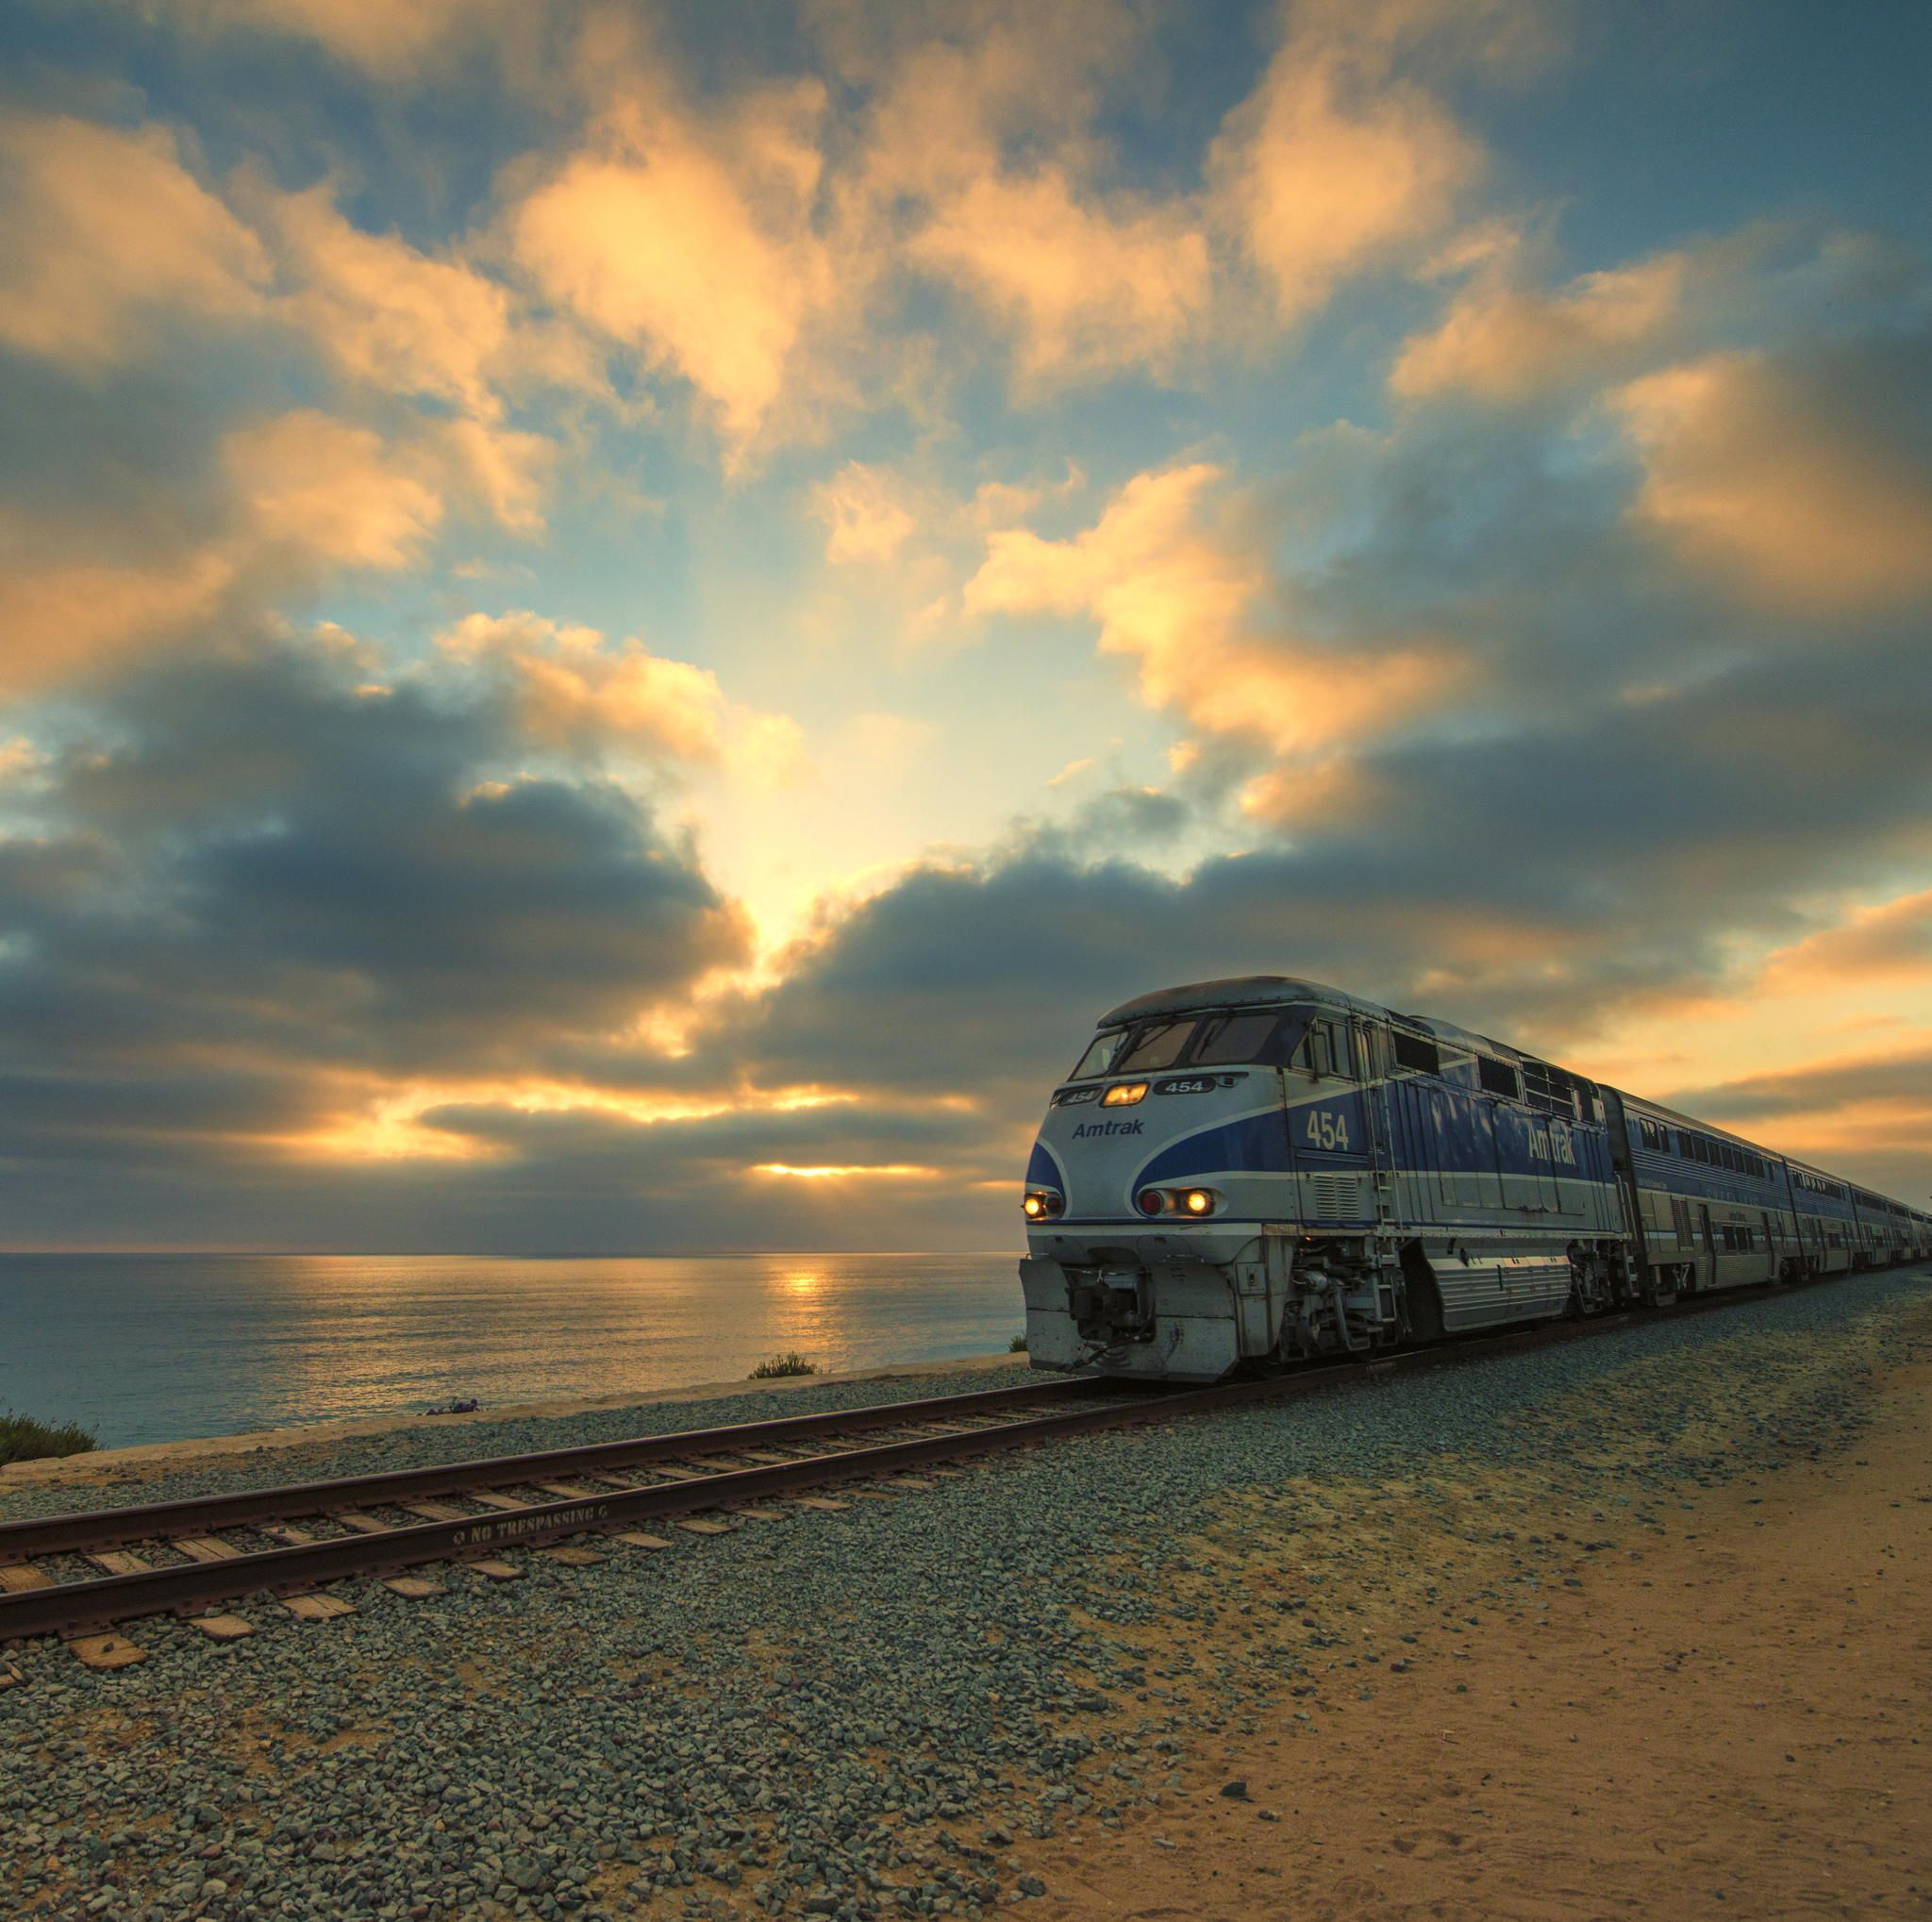 Pacific Surfliner at Sunset by Electrophile on 500px